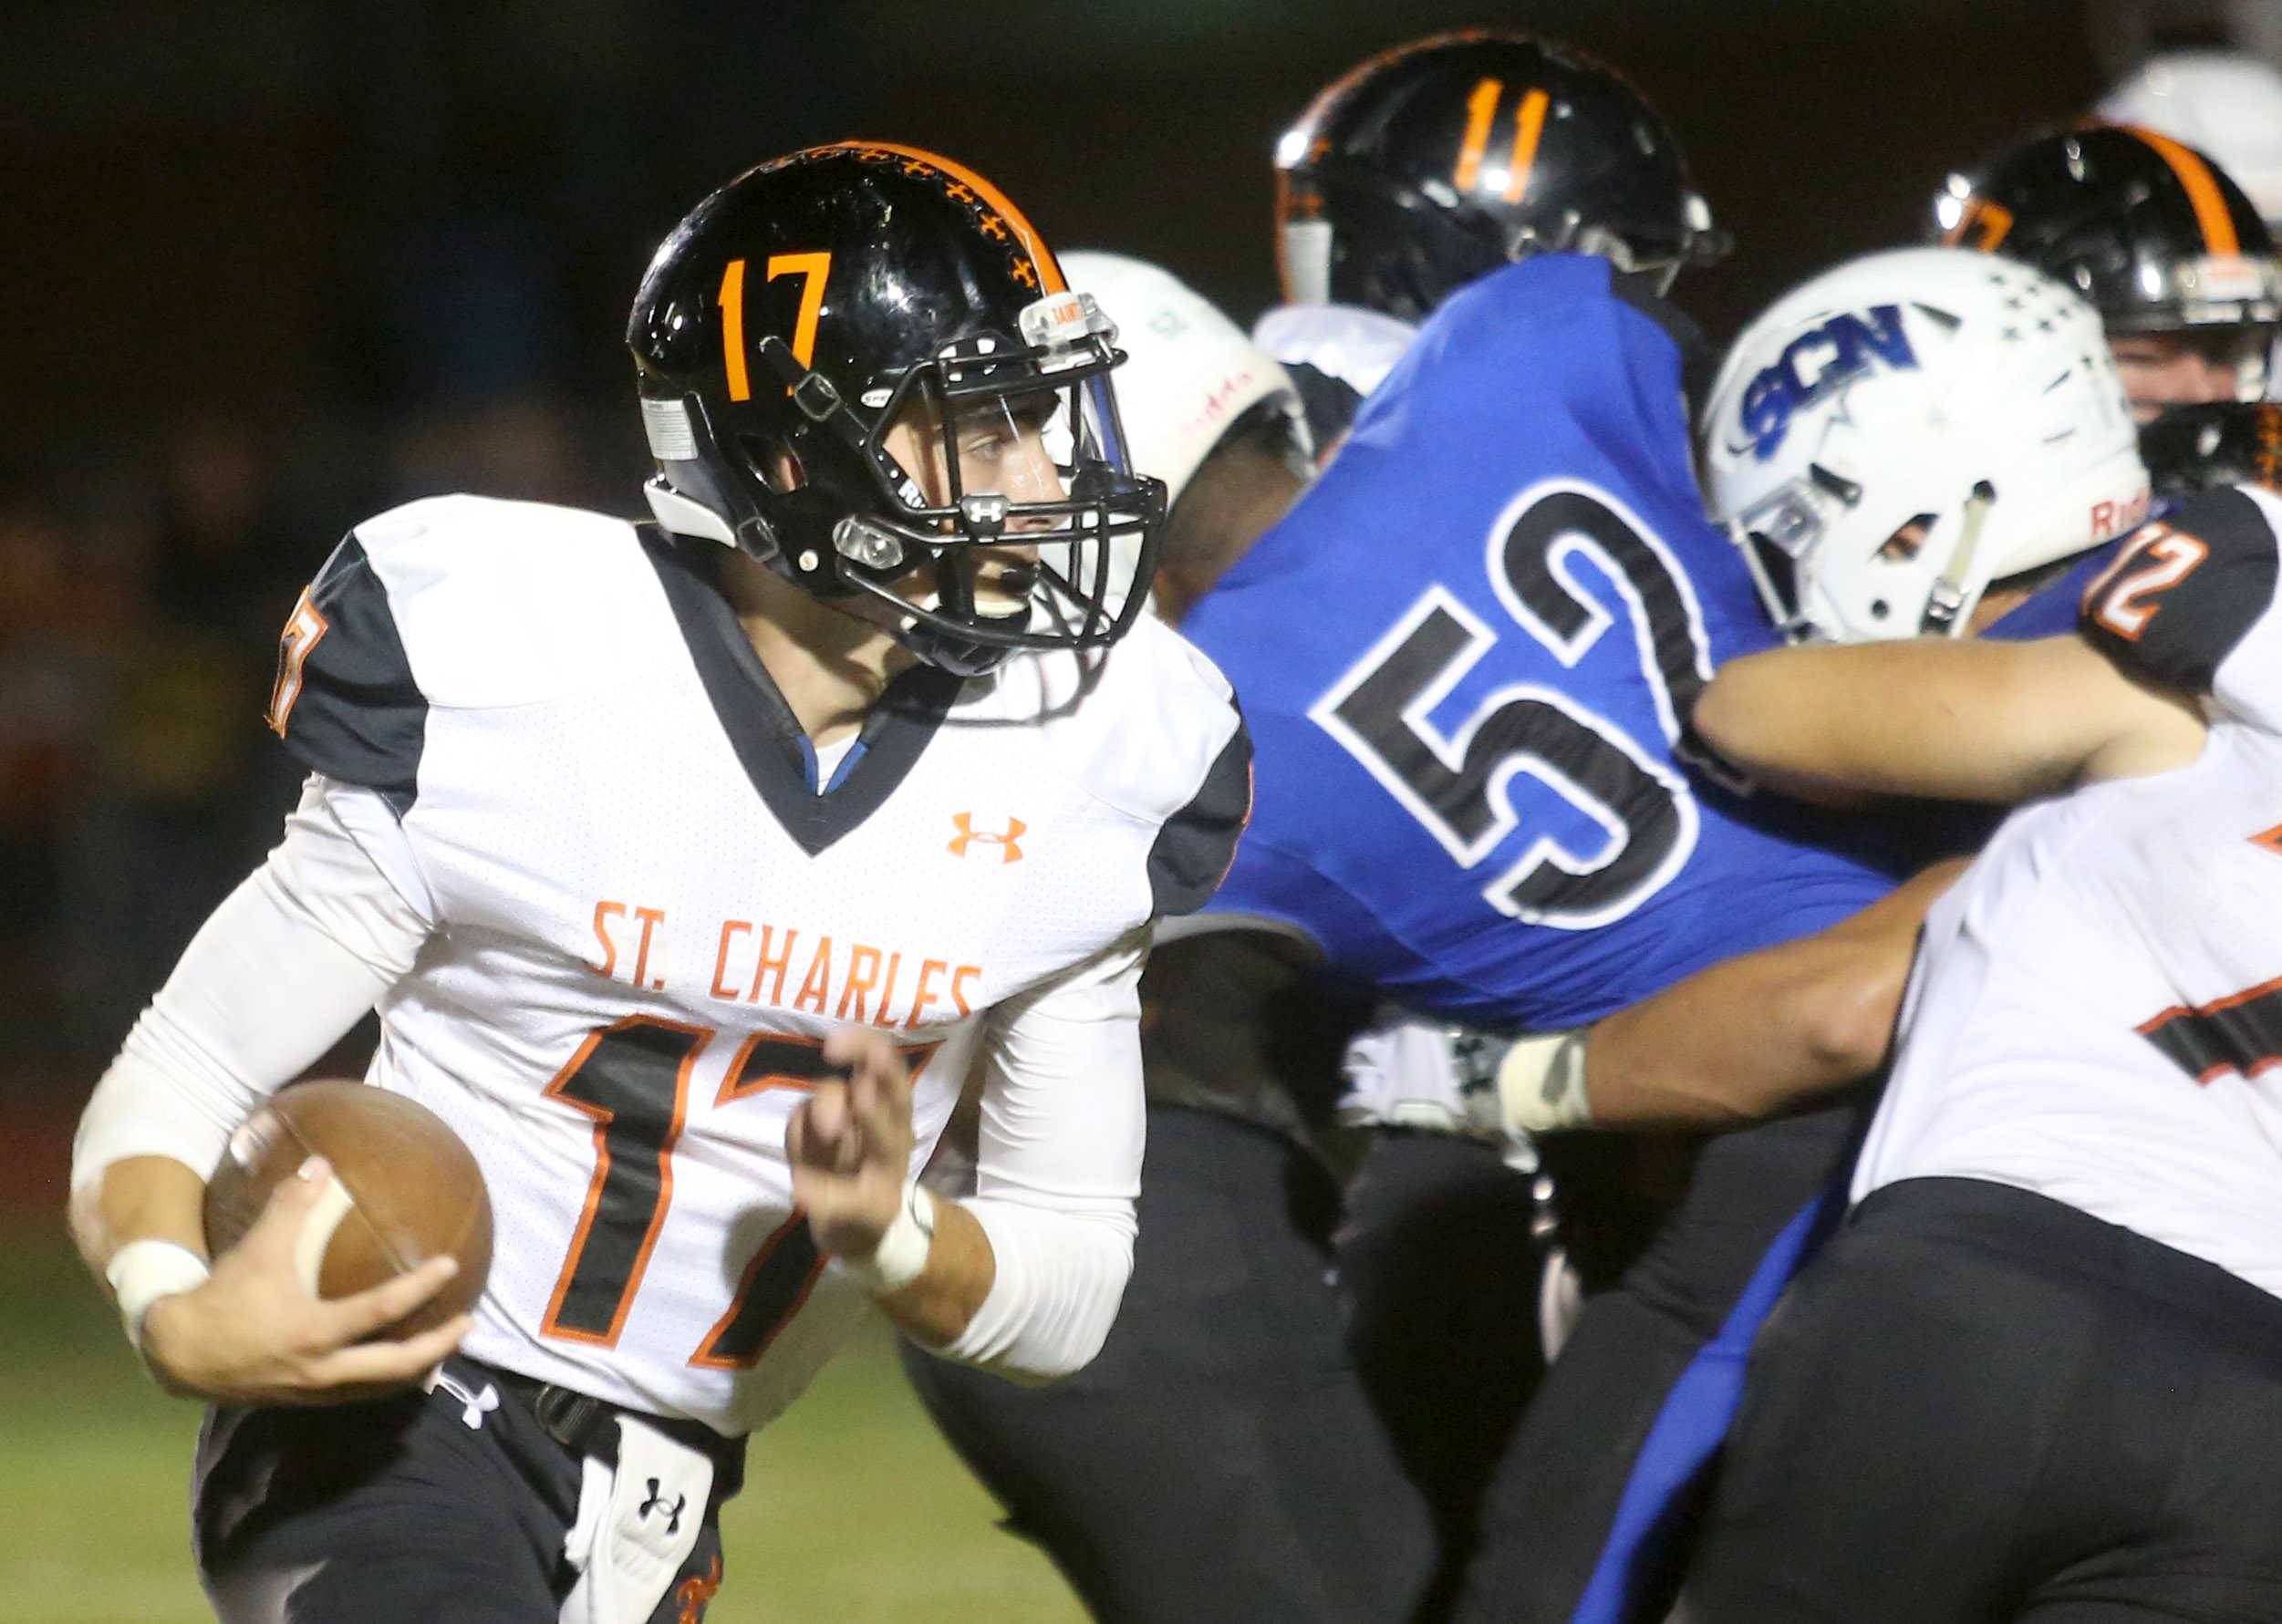 St. Charles East takes a thriller over St. Charles North